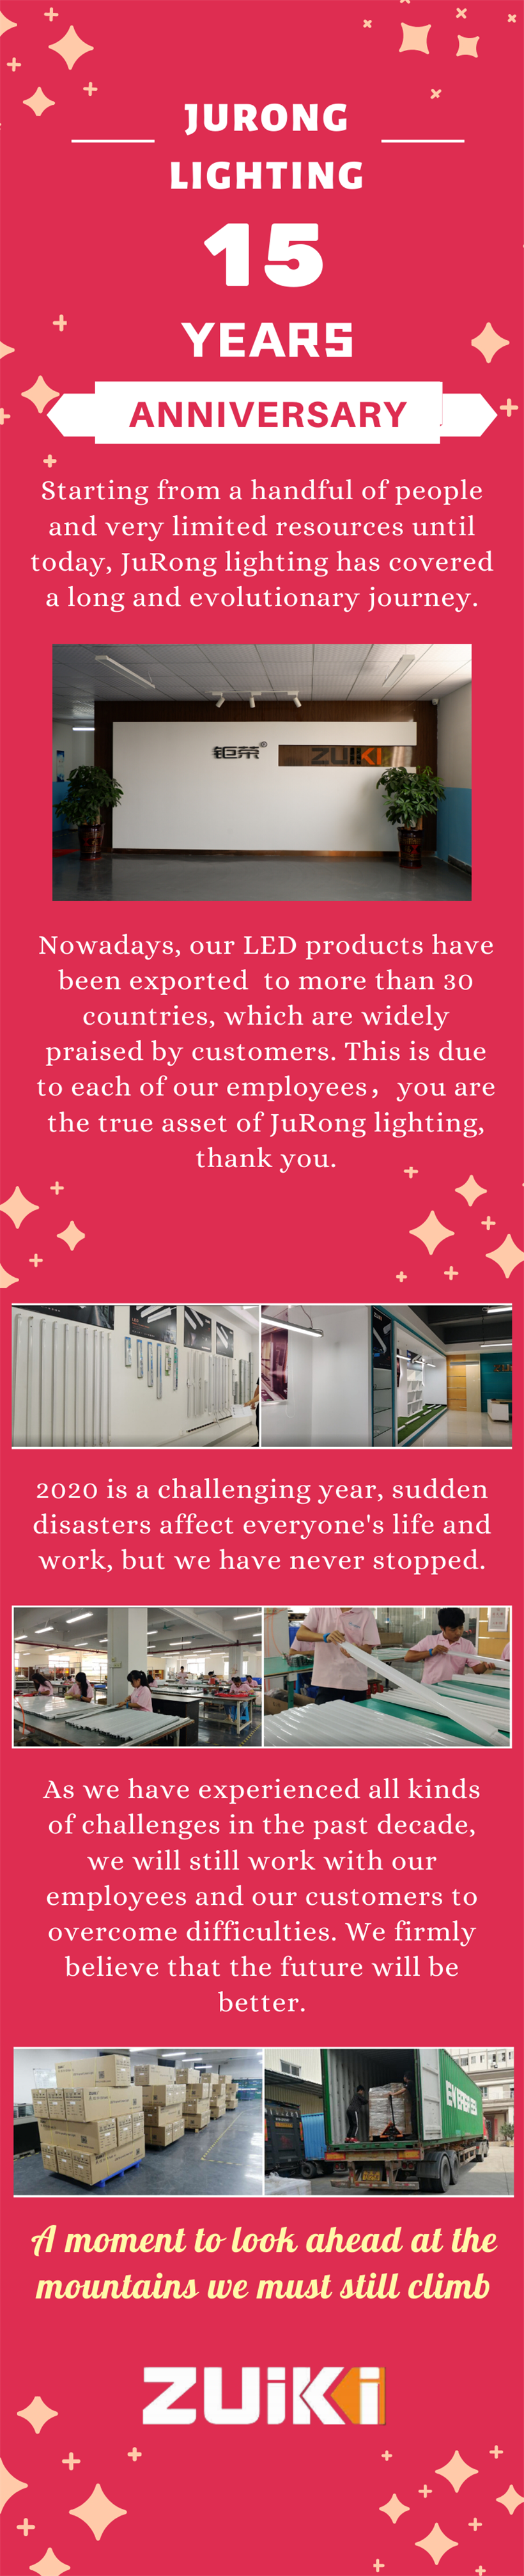 Jurong Lighting 15 Years Anniversary